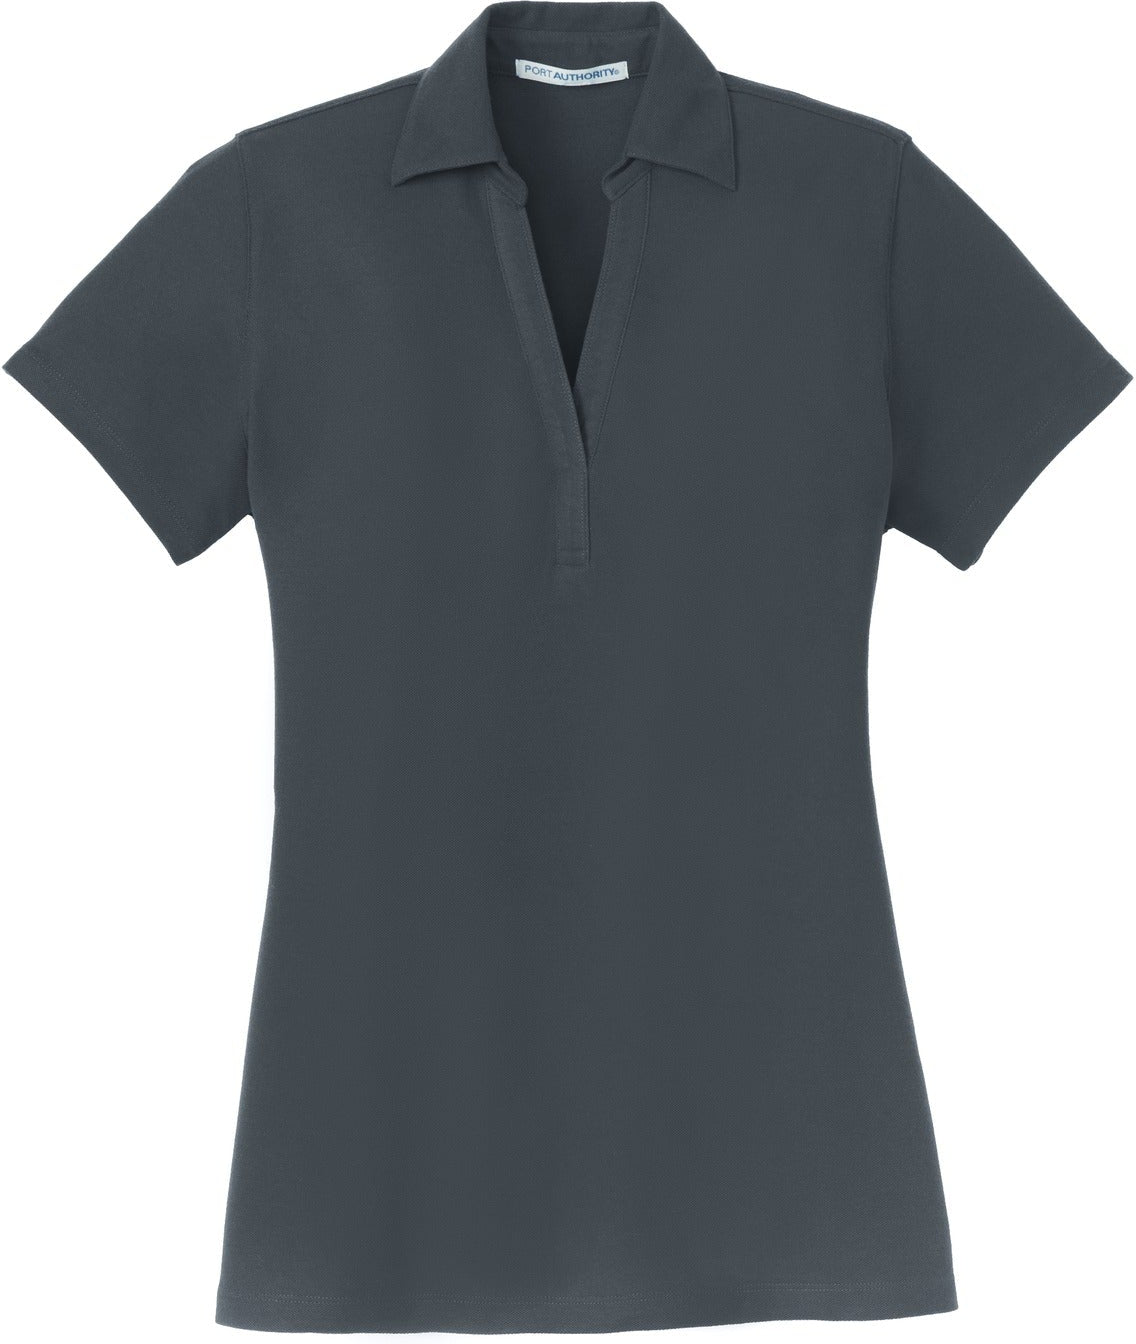 Port Authority-Ladies Silk Touch Y-Neck Polo-XS-Steel Grey-Thread Logic